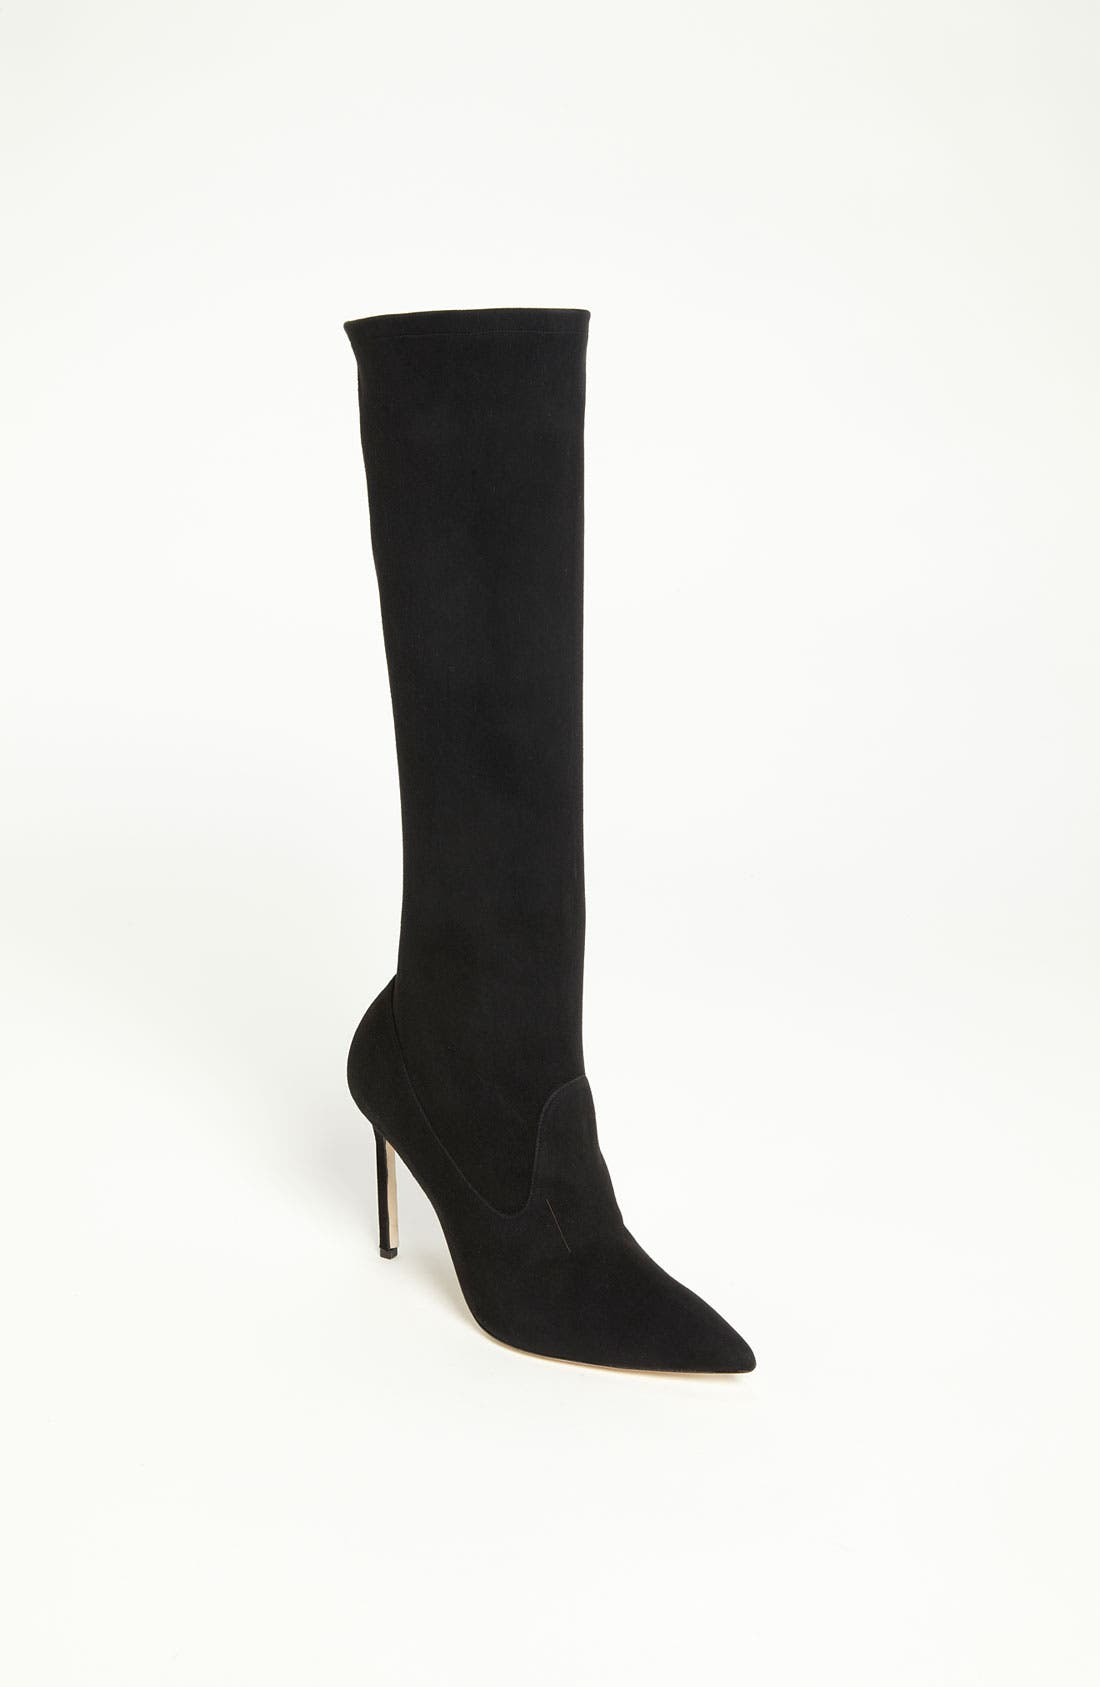 Alternate Image 1 Selected - Manolo Blahnik 'Pascalare' Tall Boot